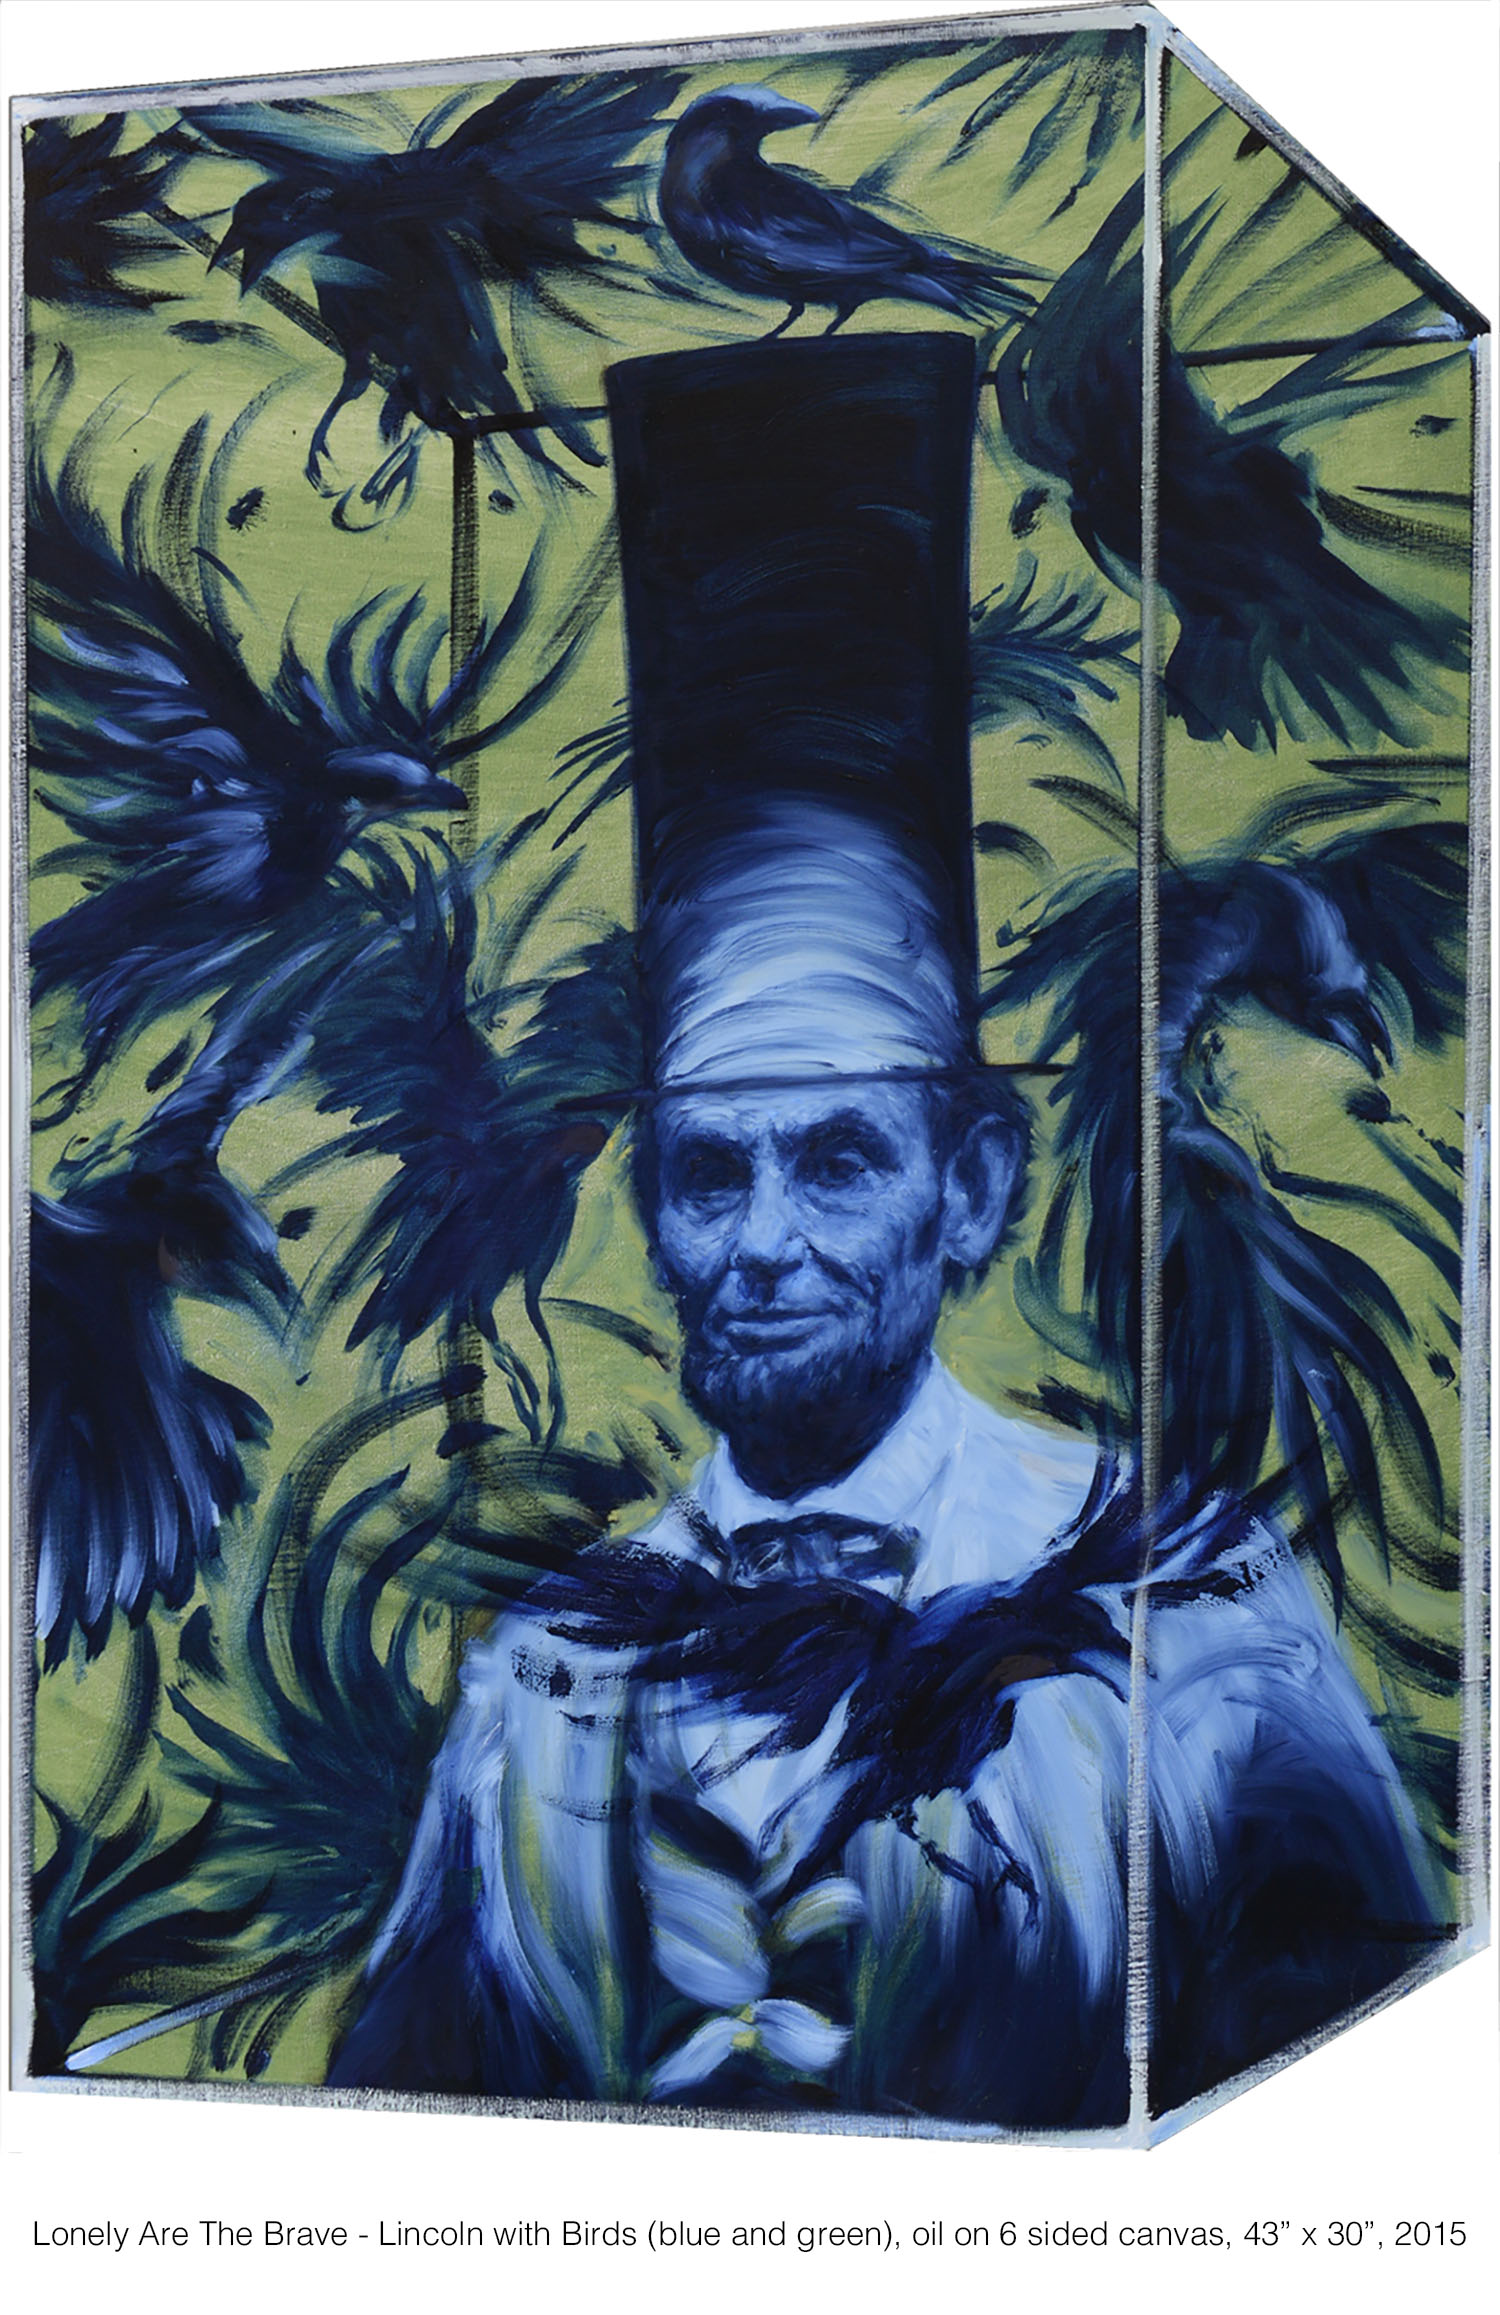 lonely_are_the_brave_lincoln_with_birds.jpg